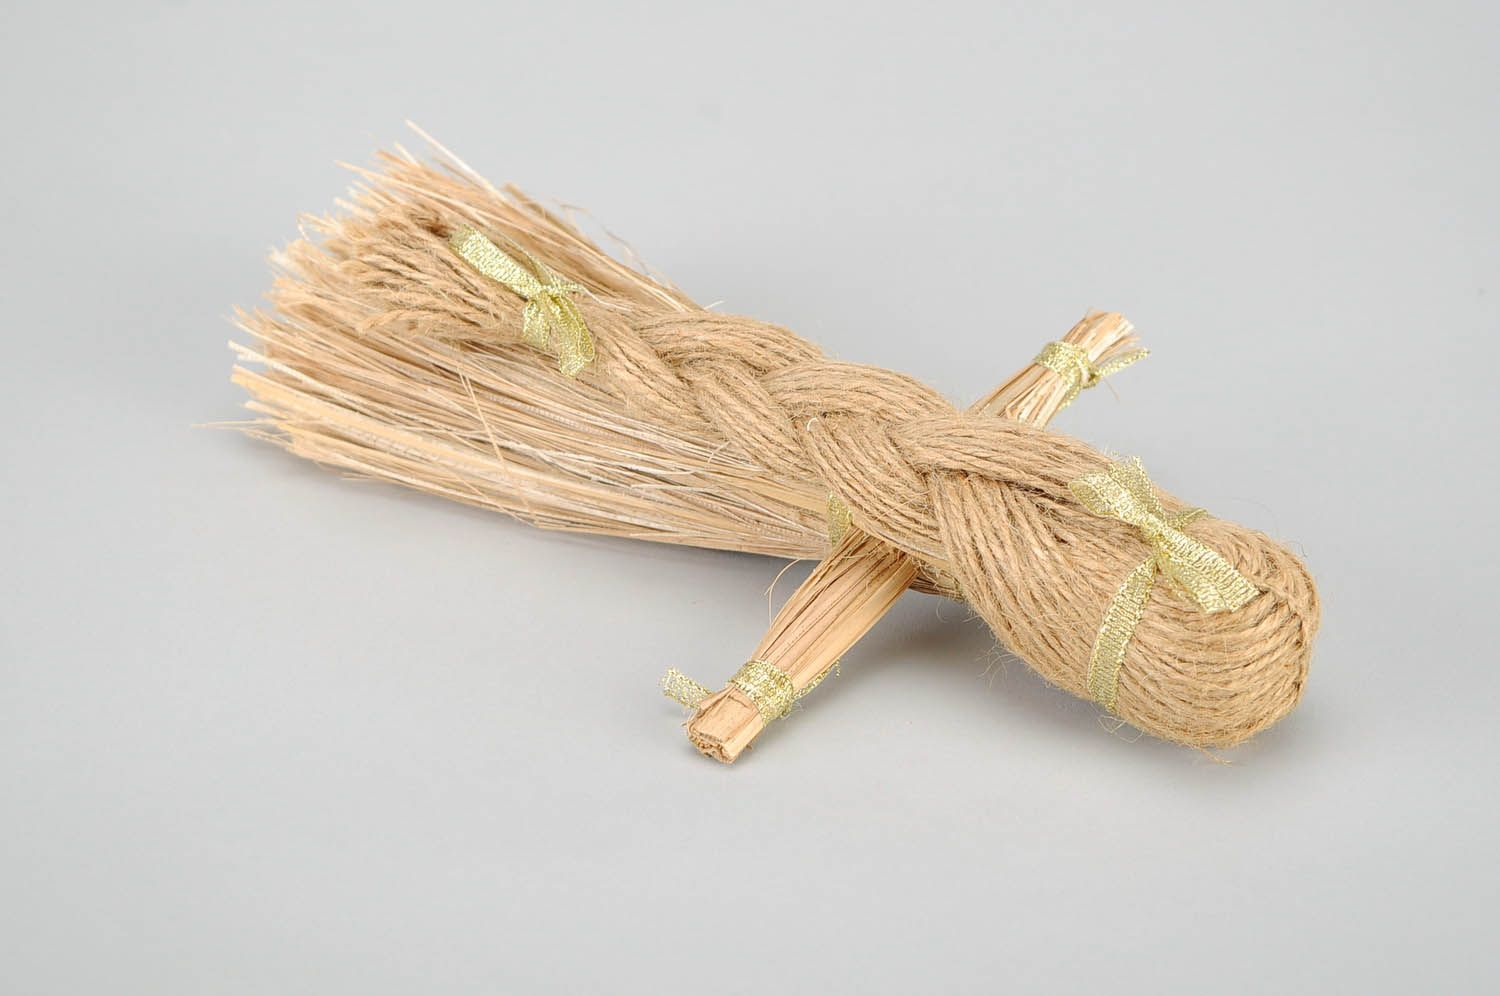 Amulet doll made of natural material photo 4